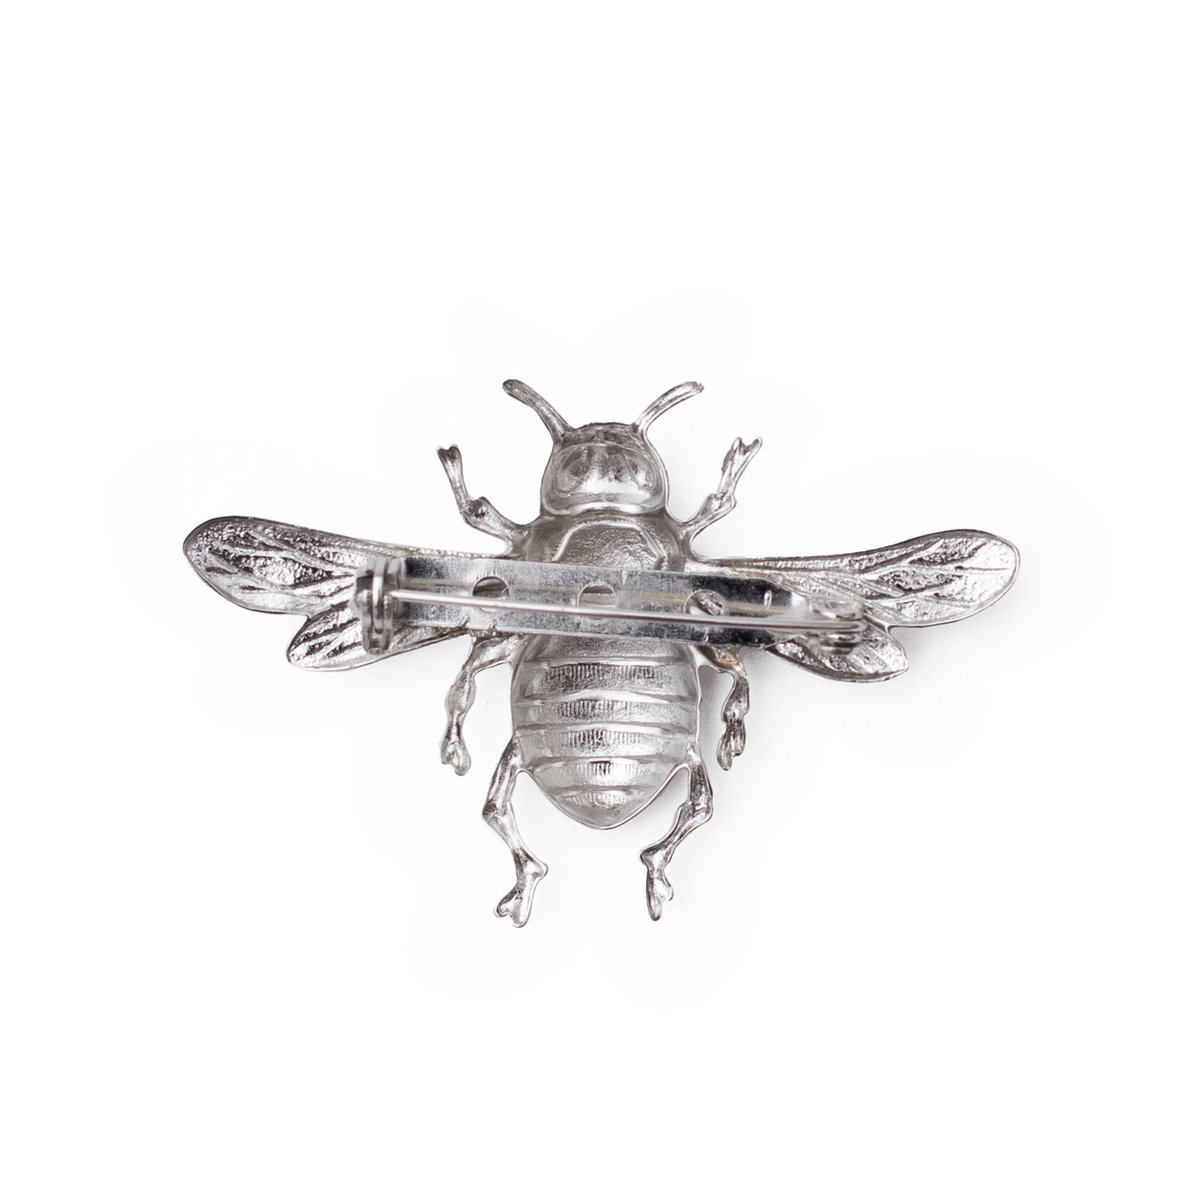 NRODA BEE PIN RHODIUM PLATED BEE PIN Head pieces TNEMNRODAaccessories- NRODA